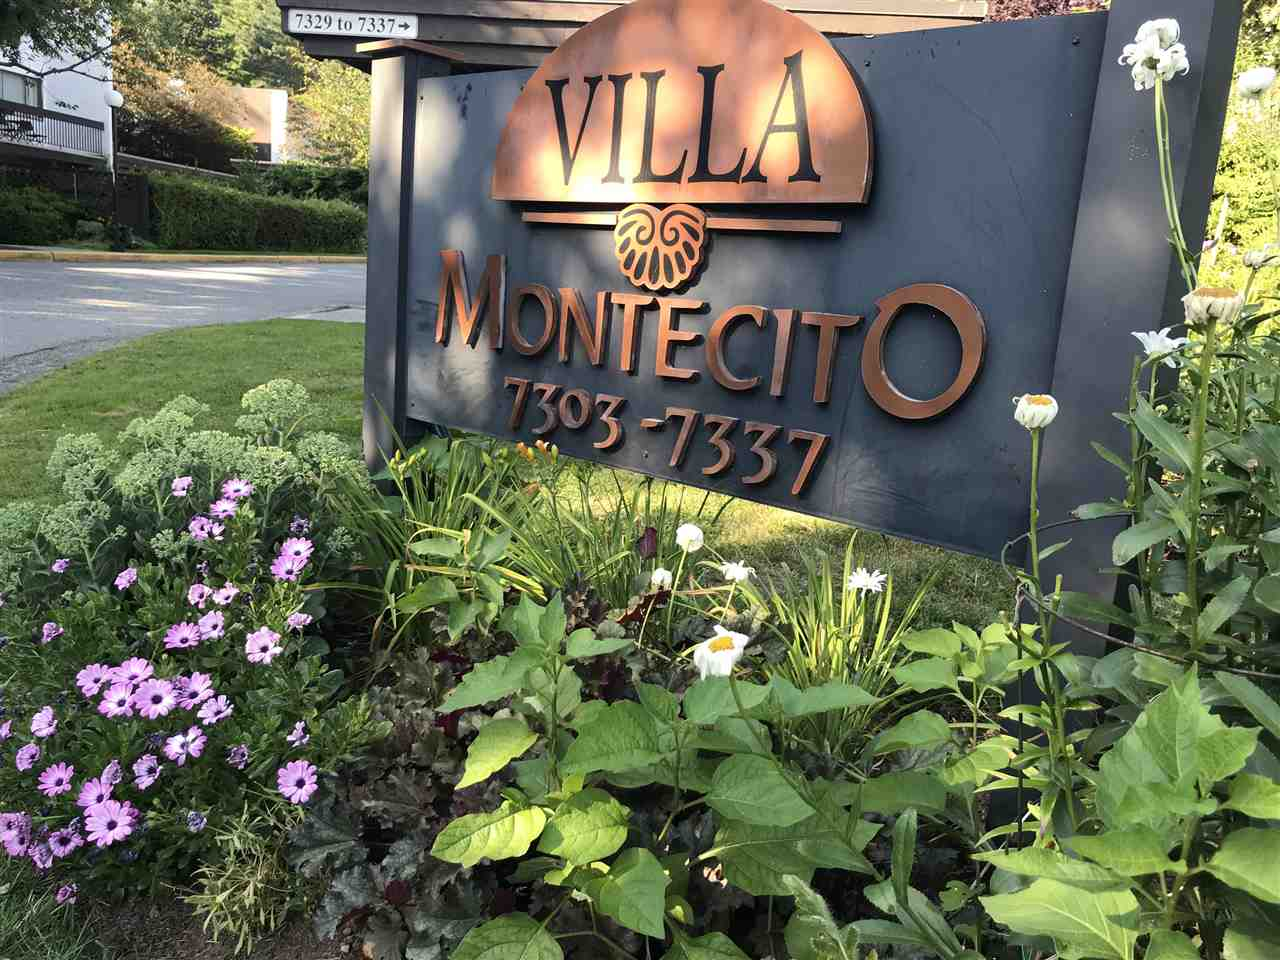 Villa Montecito - 2 storey townhome located in a nice and quiet neighbourhood. Contains 3 bedrooms and 2 1/2 bathrooms with new paint, two new skylights, updated kitchen with quartz stone counter top, updated bathroom and laundry room. Main floor has a large outdoor west facing balcony overlooking the greenbelt. A very well run complex with beautiful garden and outdoor pool for your summer enjoyment. Walk to Montecito Elementary School, shopping, parks & Burnaby Mountain Golf Course. 10 minutes drive to SFU. Close to public transit and skytrain.